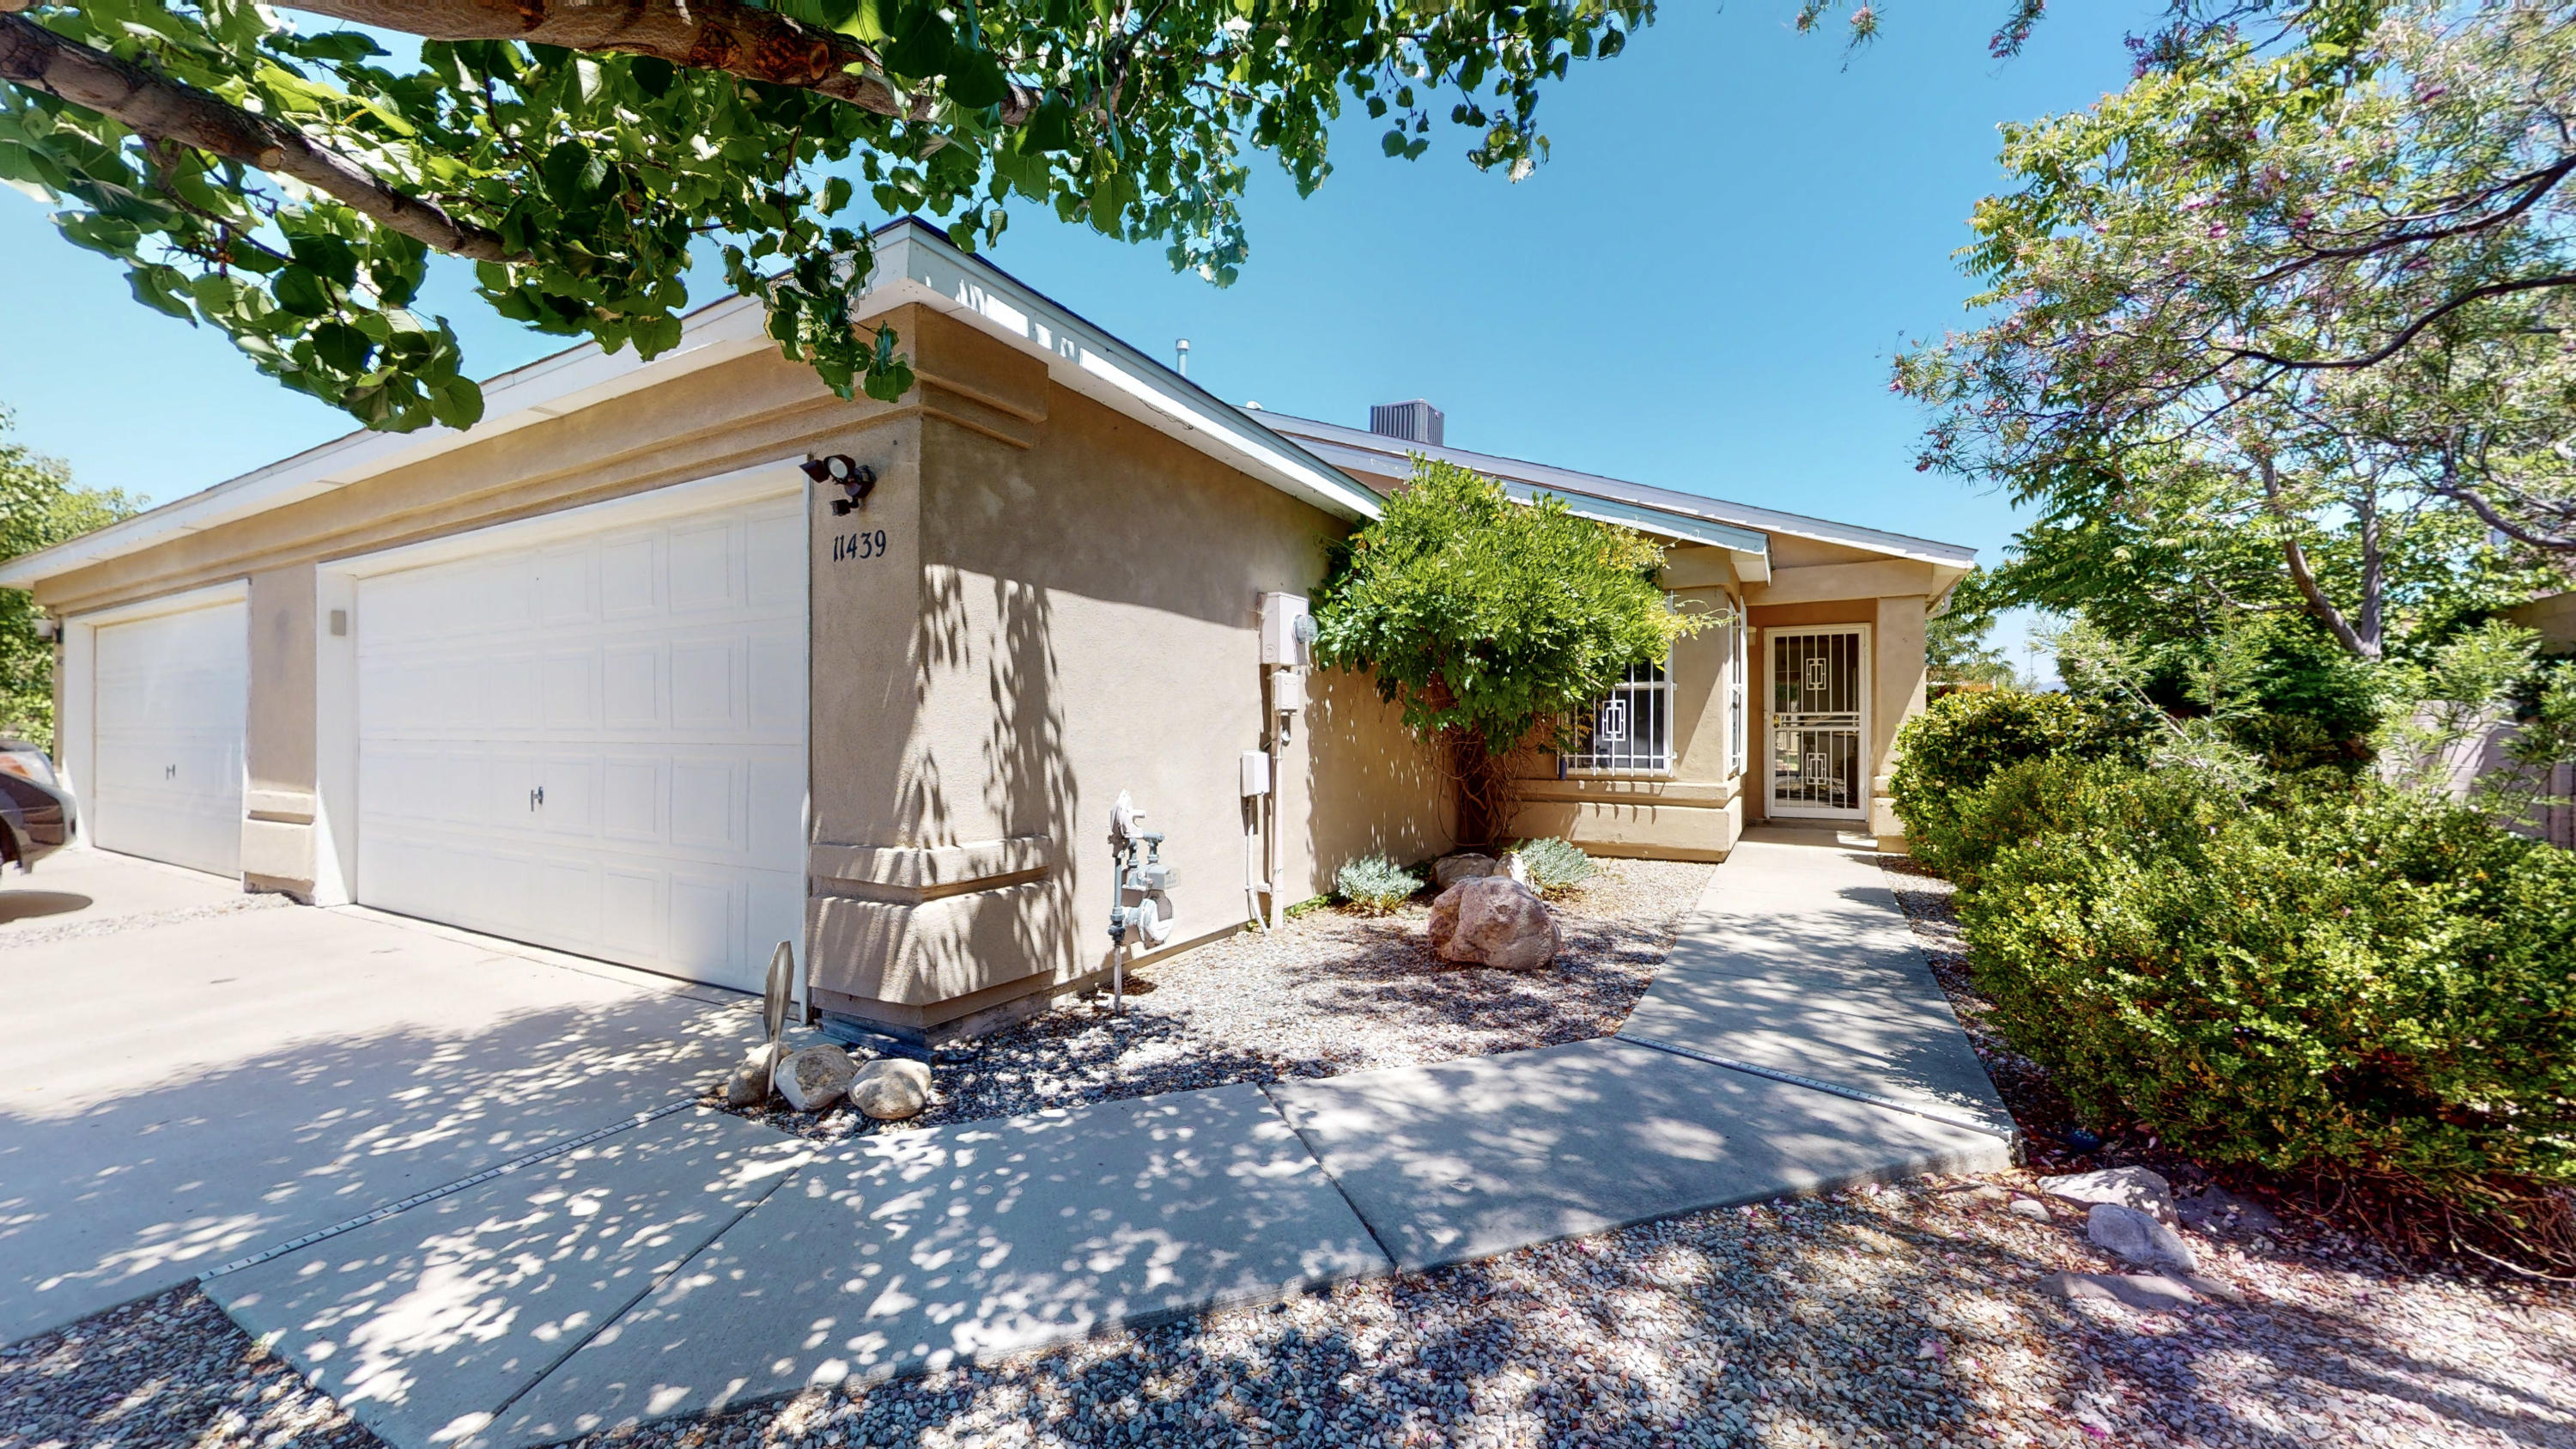 OFFER RECEIVED. MOVE IN READY! This wonderful single story townhome is perfectly located in the desirable Miravista Subdivision. Enjoy the upgraded REFRIGERATED AIR, as well as an upgraded Furnace. New roof was replaced in 2018. Enjoy those lovely summer nights in the largest yard in the subdivision, under your beautiful Pergola. Easy access to I-40, Sandia Labs and Kirkland Air Force Base as well as great shopping and restaurants.